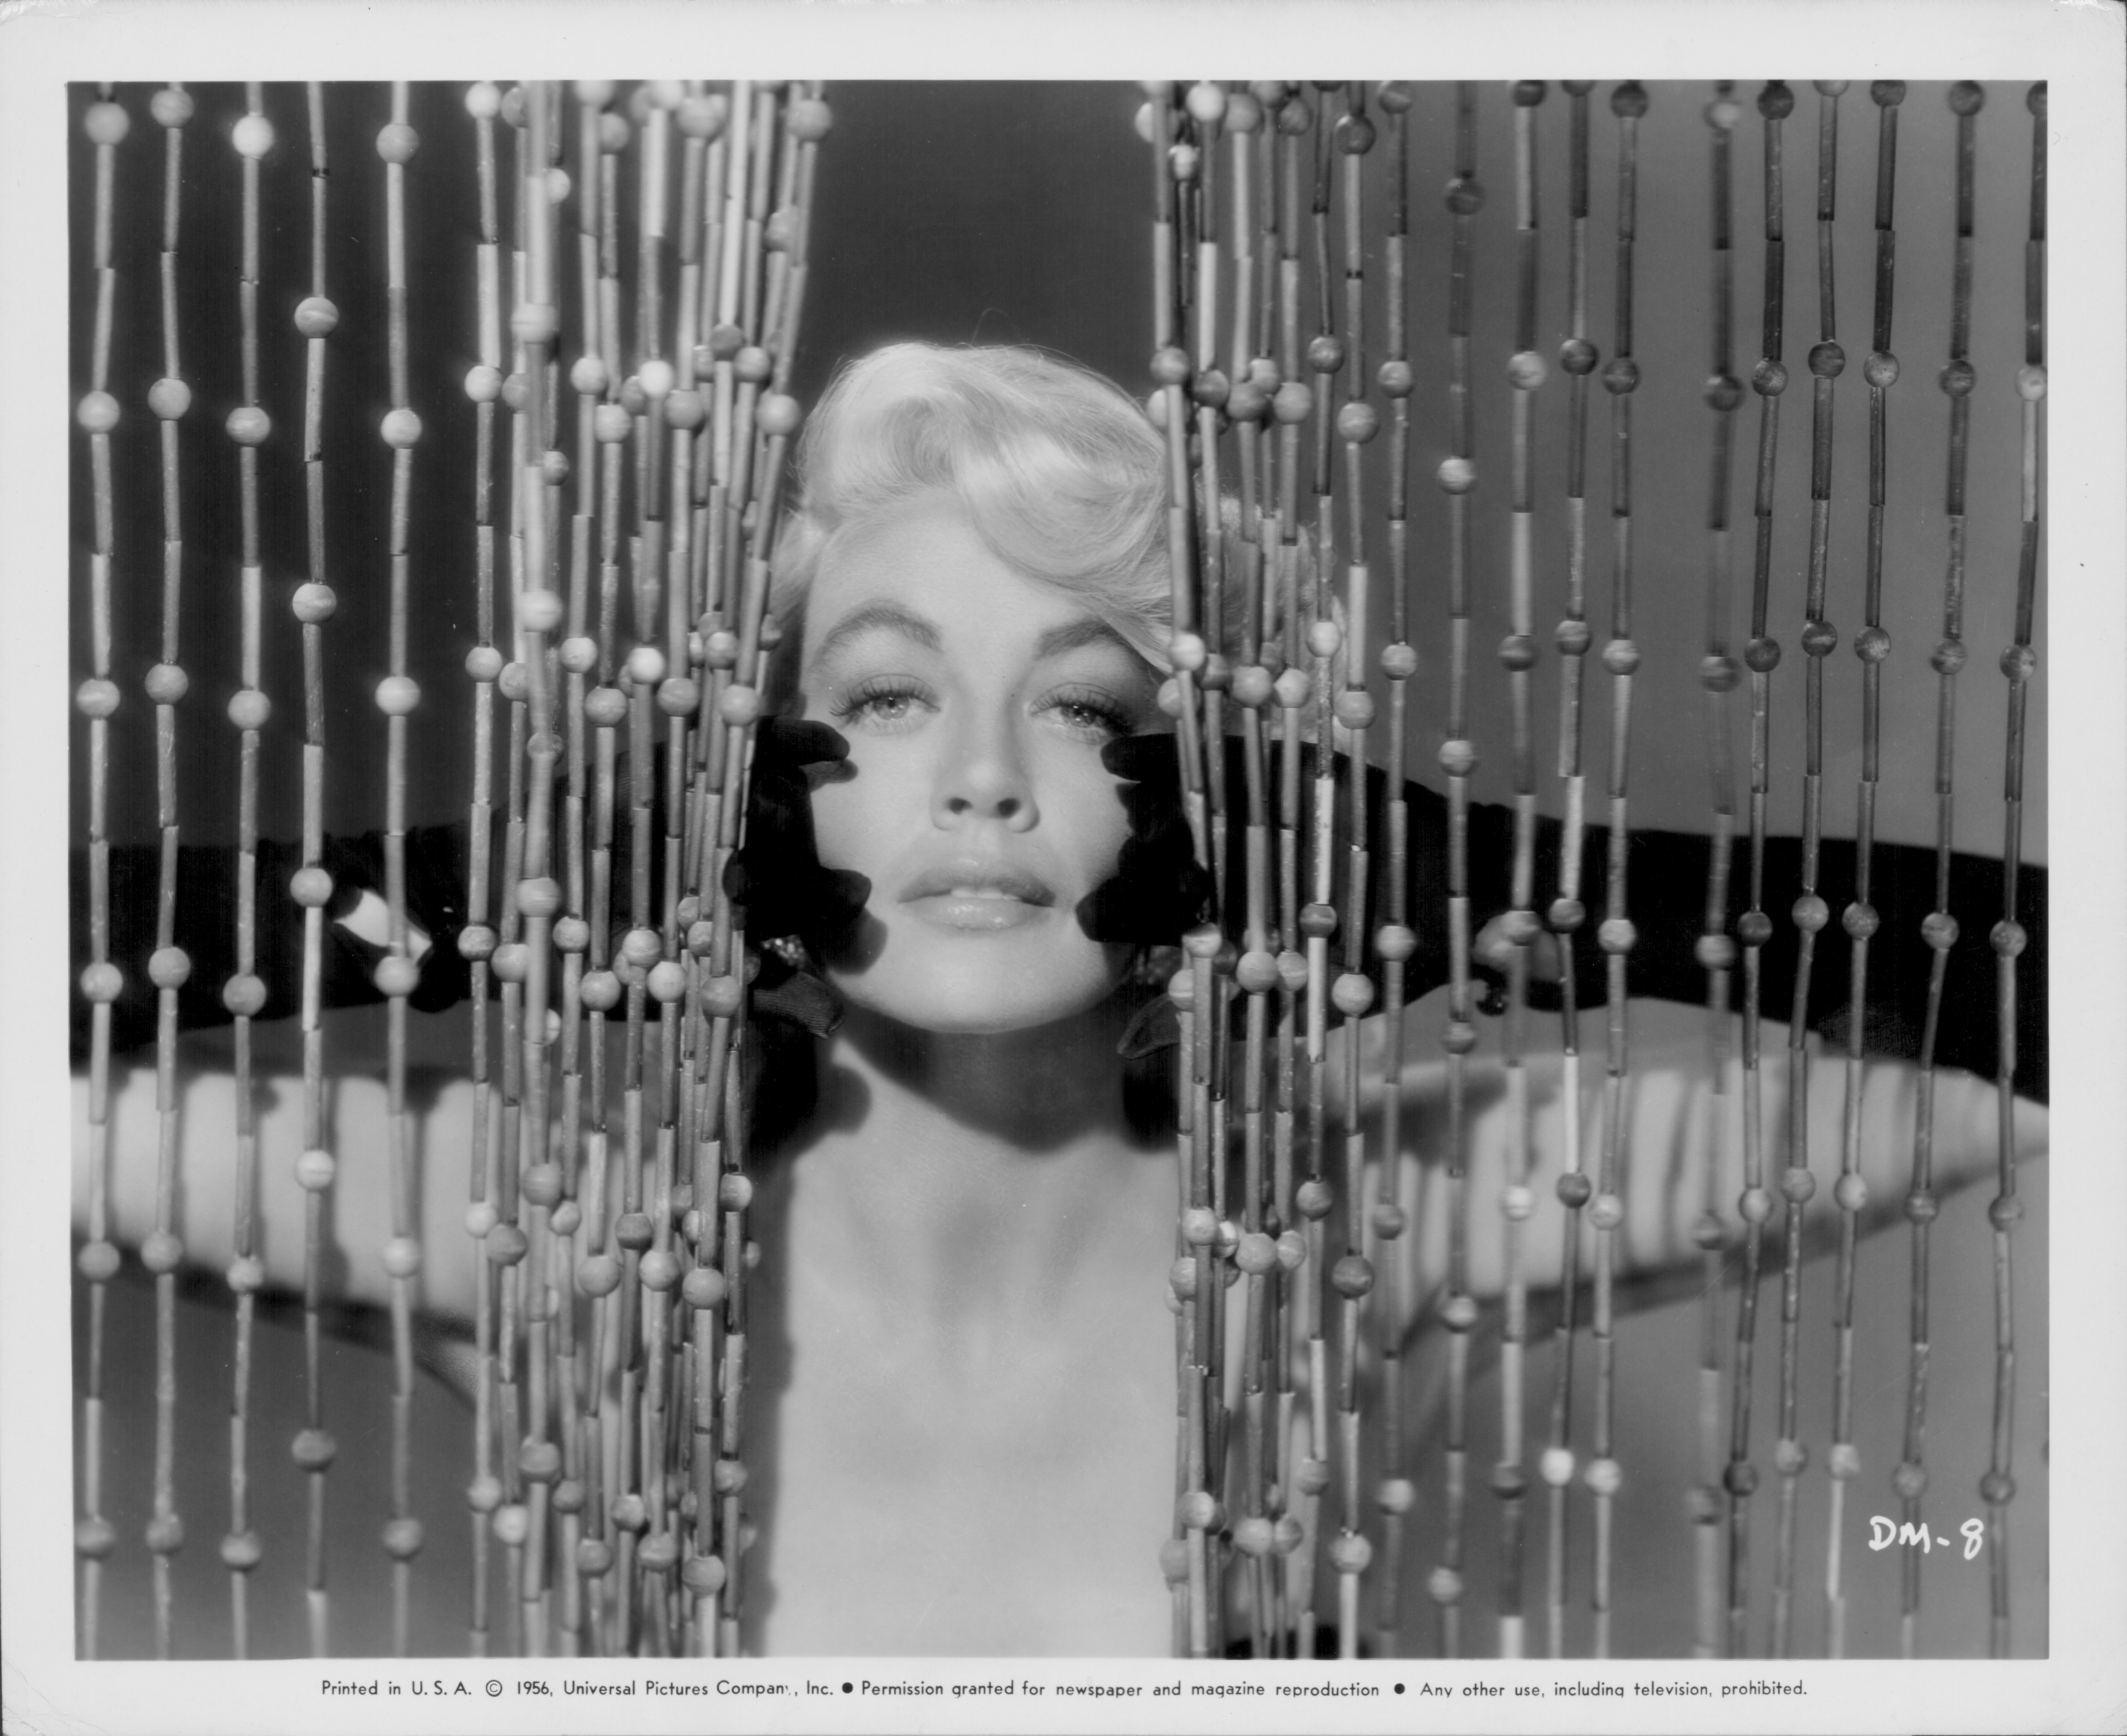 Promotional shot of actress Dorothy Malone, as she appears in the movie 'Quantez', 1956.